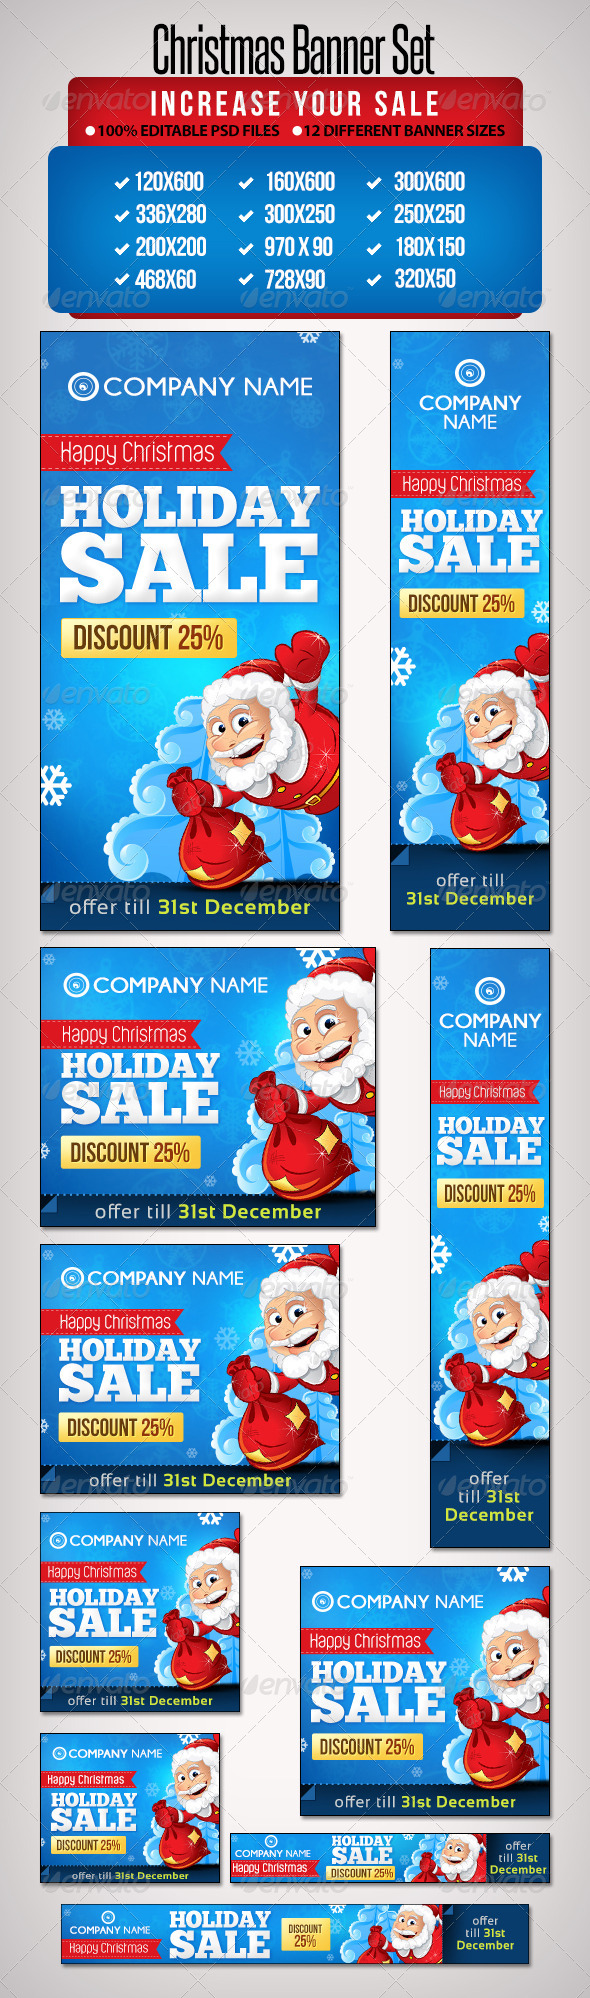 Christmas Banner Set 5 - 12 Sizes - Banners & Ads Web Elements